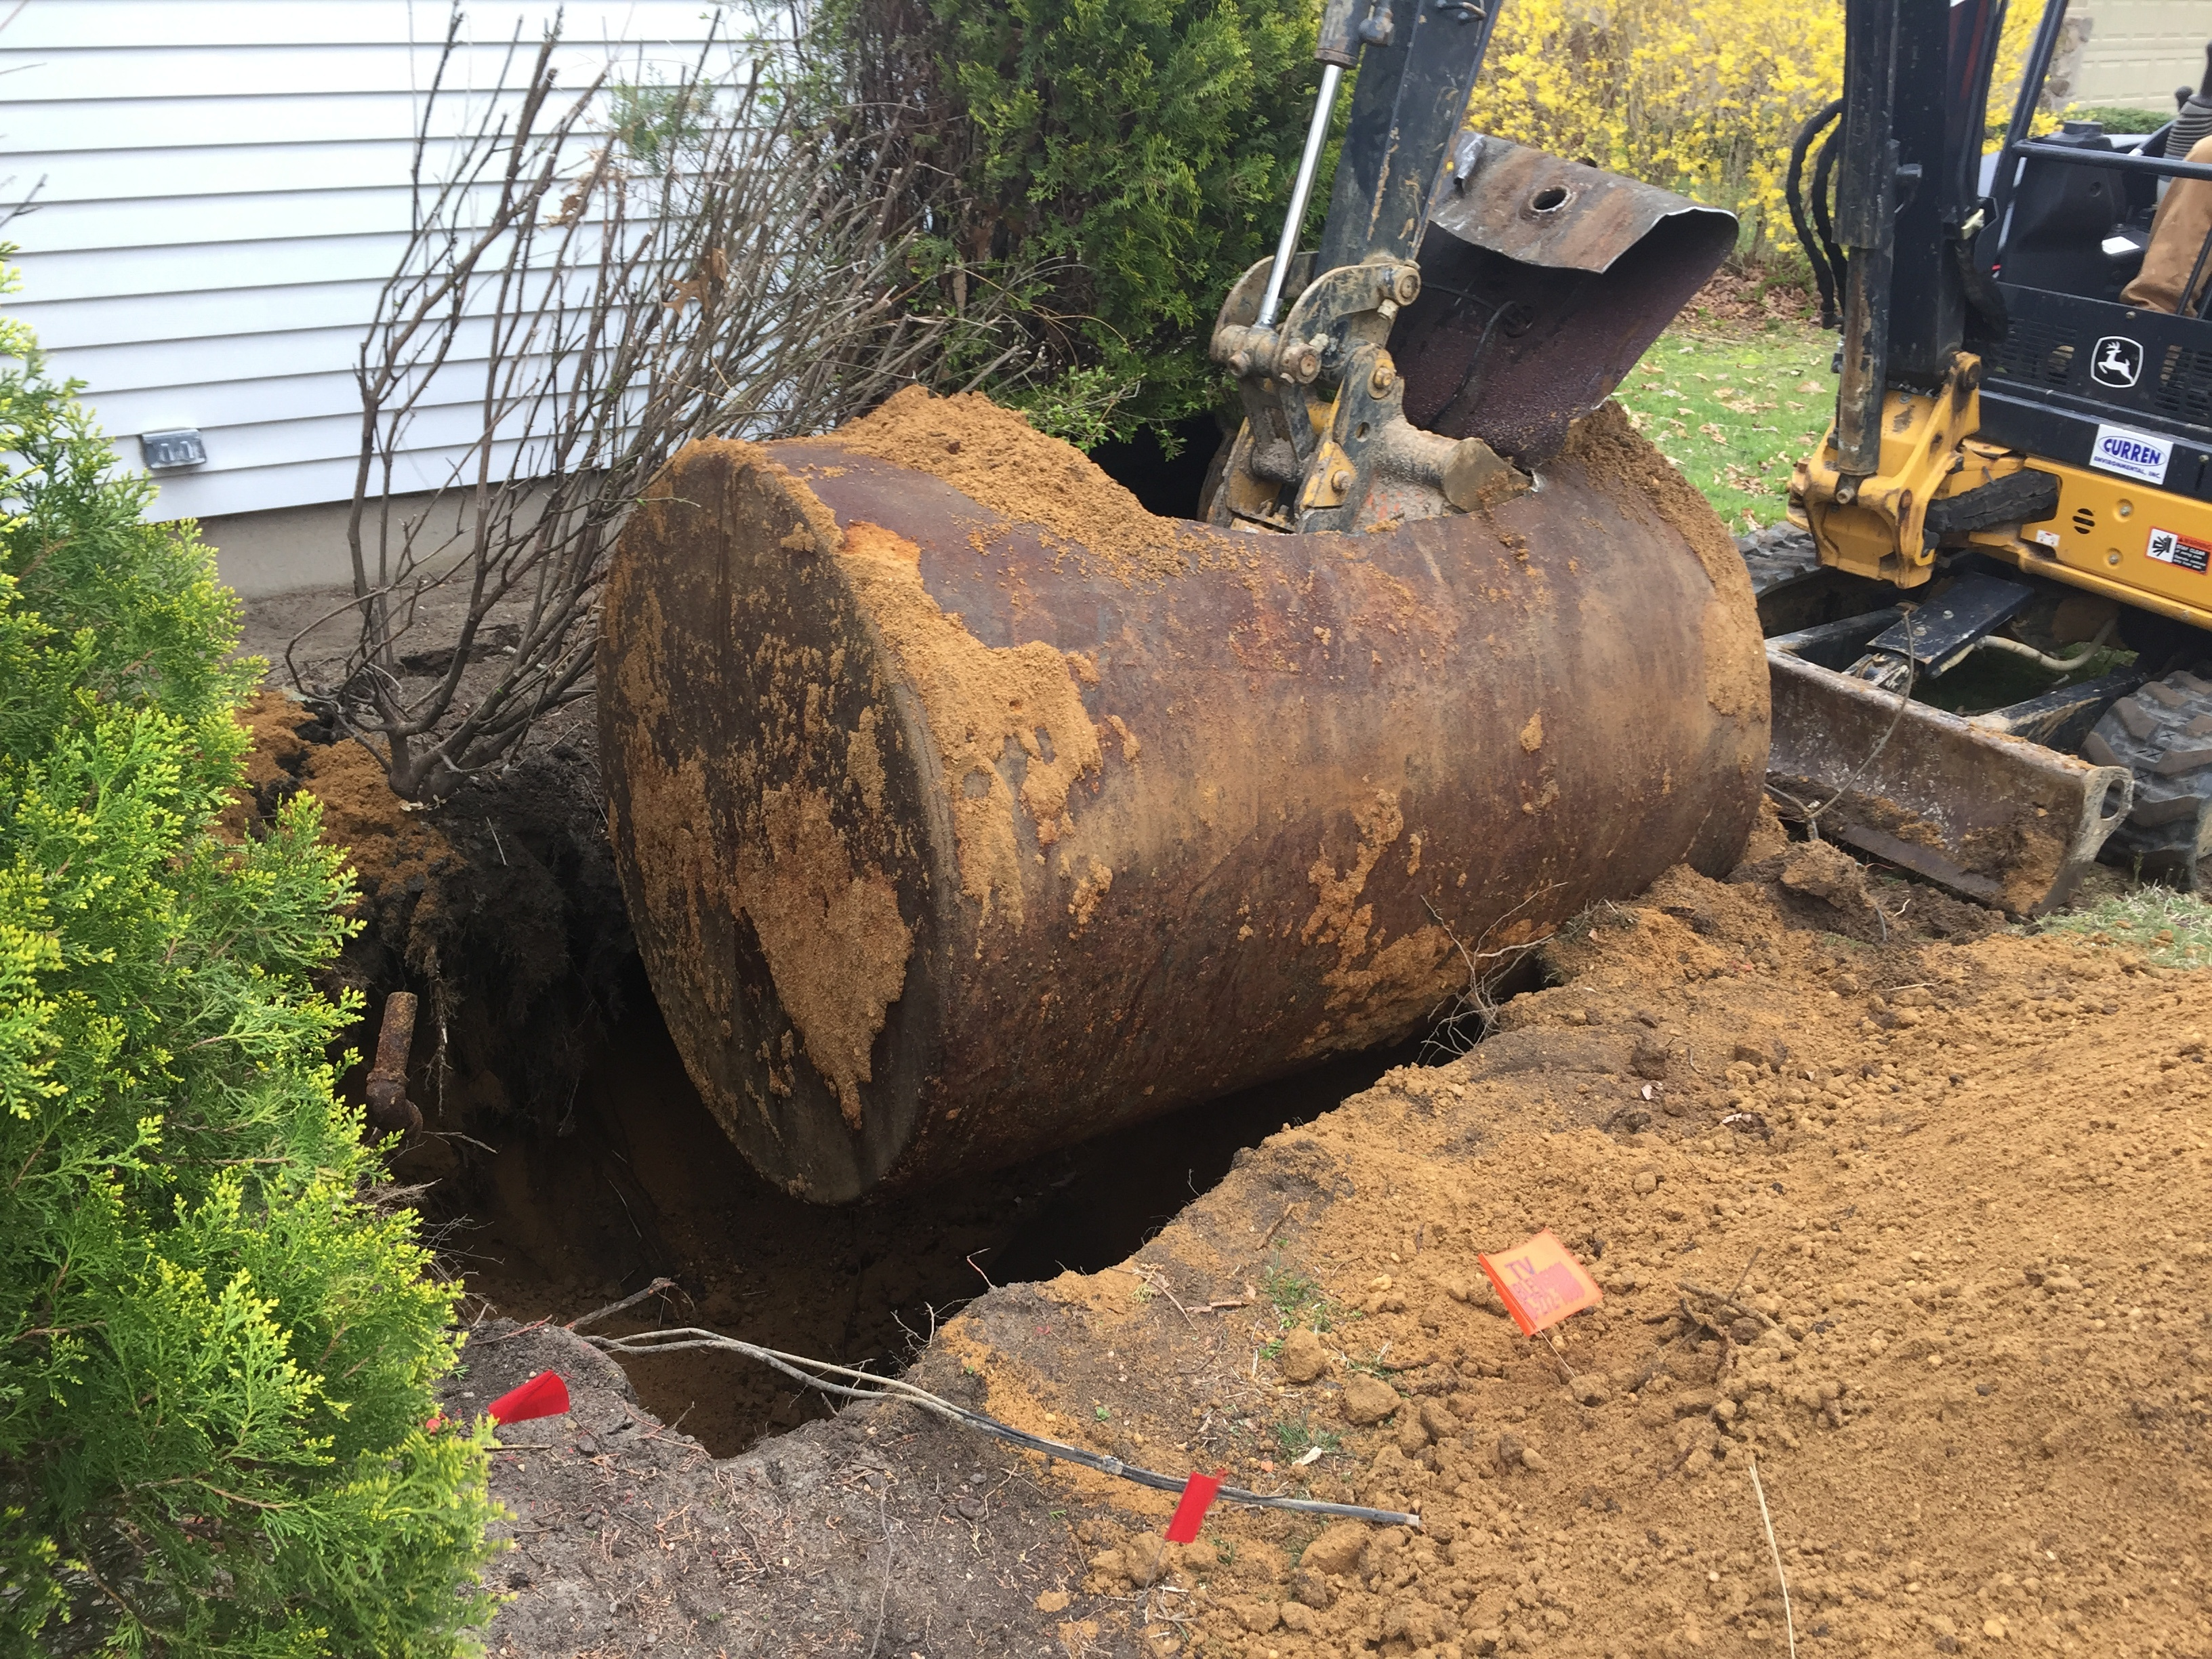 how long does it take to remove an oil tank?